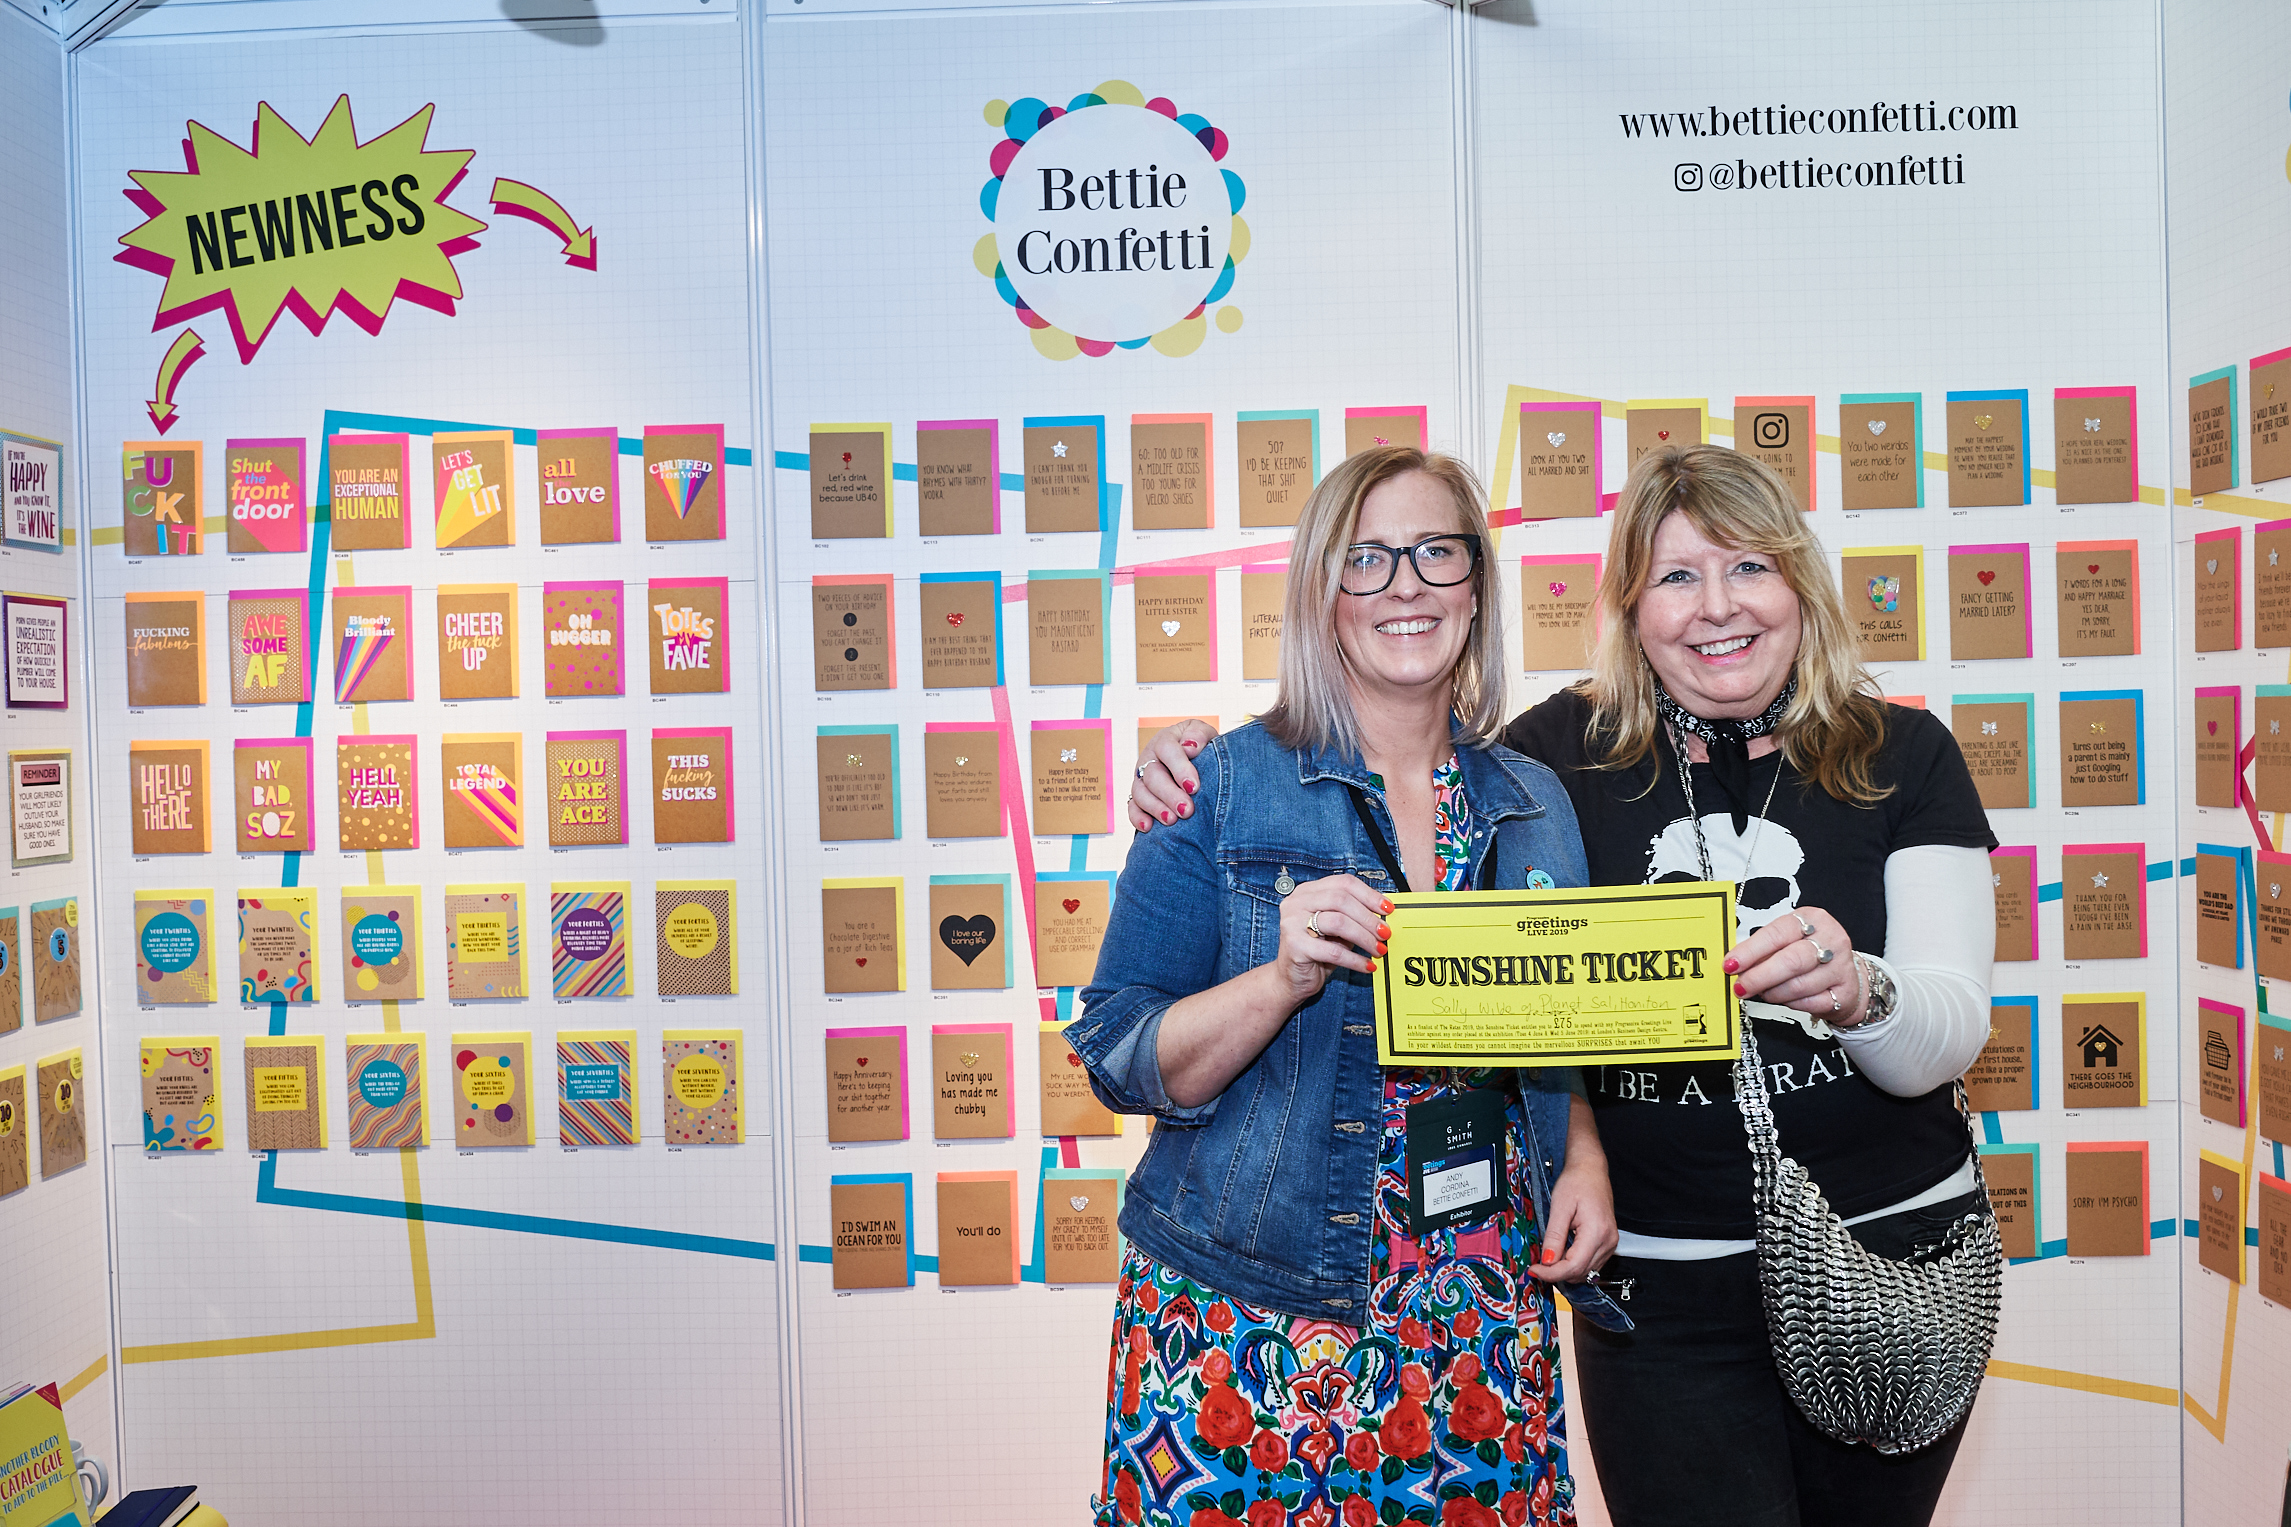 Above: Sally Wilde (right) was delighted to spend her Sunshine Ticket (for being a Retas 2019 finalist) with Bettie Confetti at the recent PG Live exhibition.